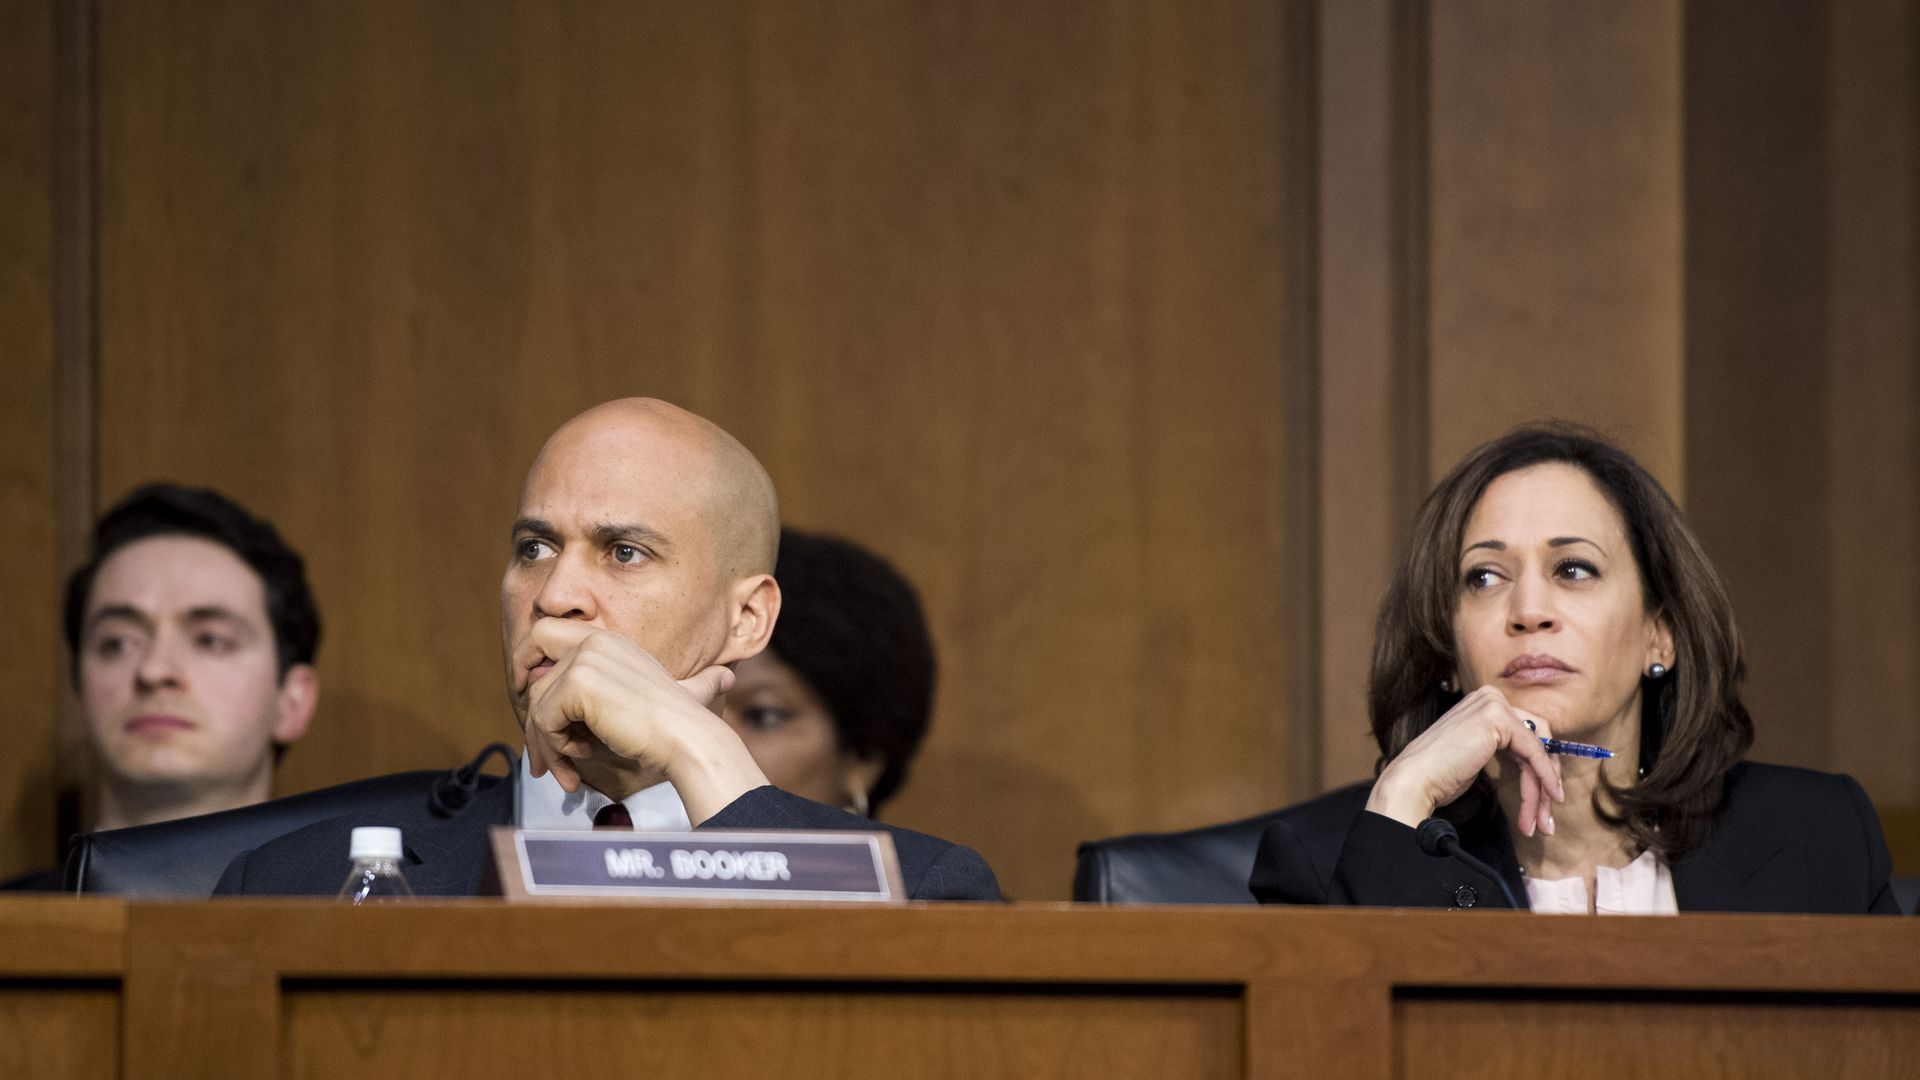 Senators Booker and Harris look stern.